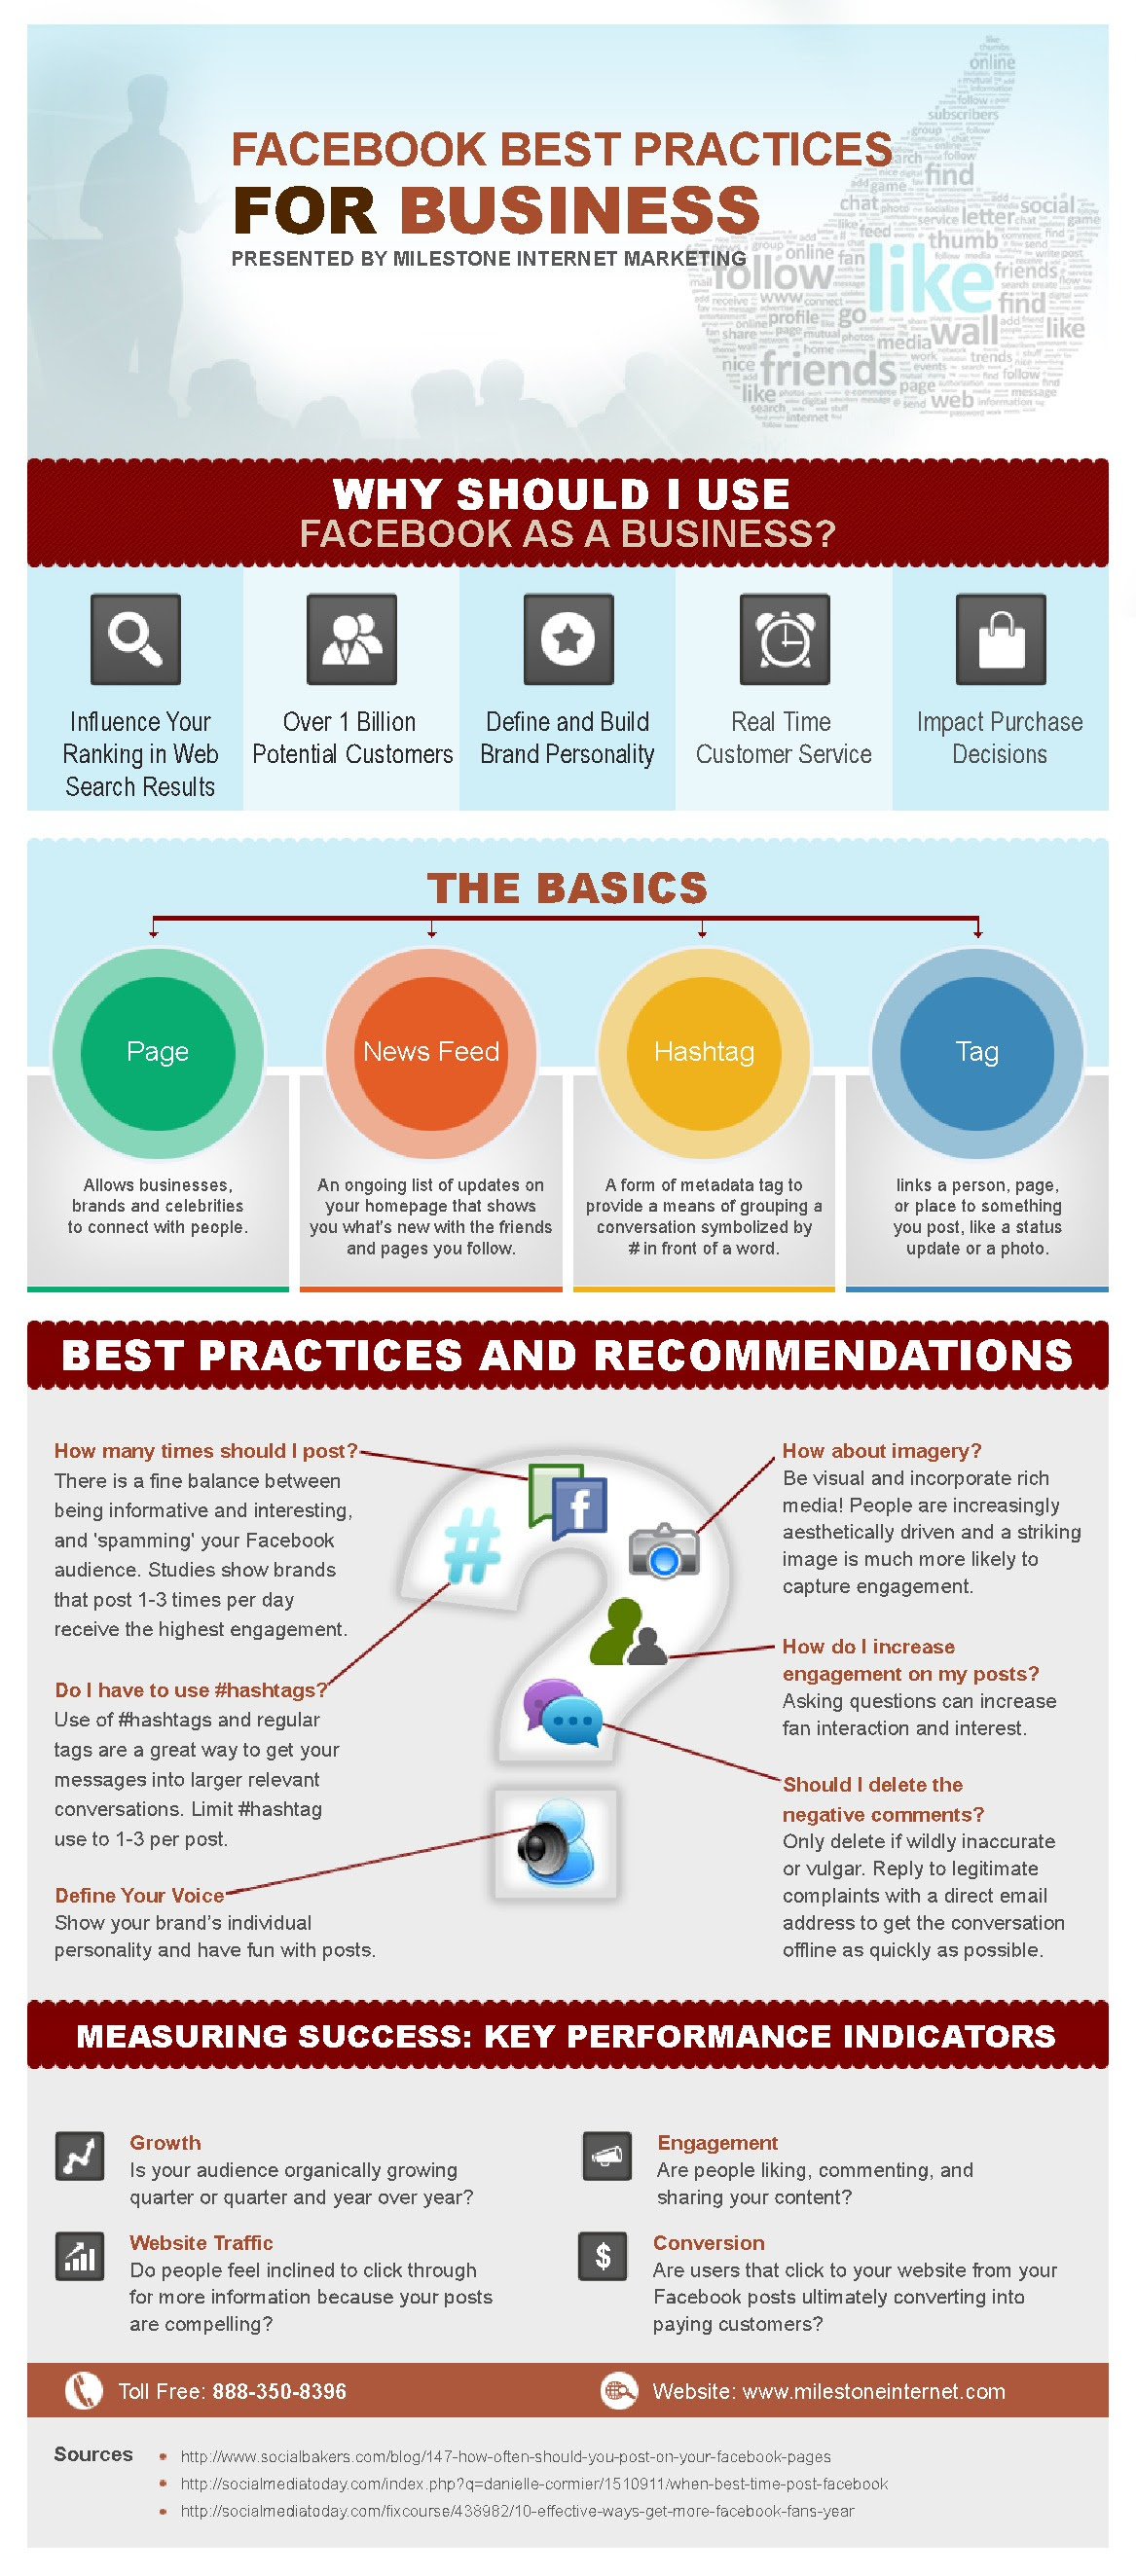 Facebook Best Practices And Recommendation For Brands [INFOGRAPHIC]